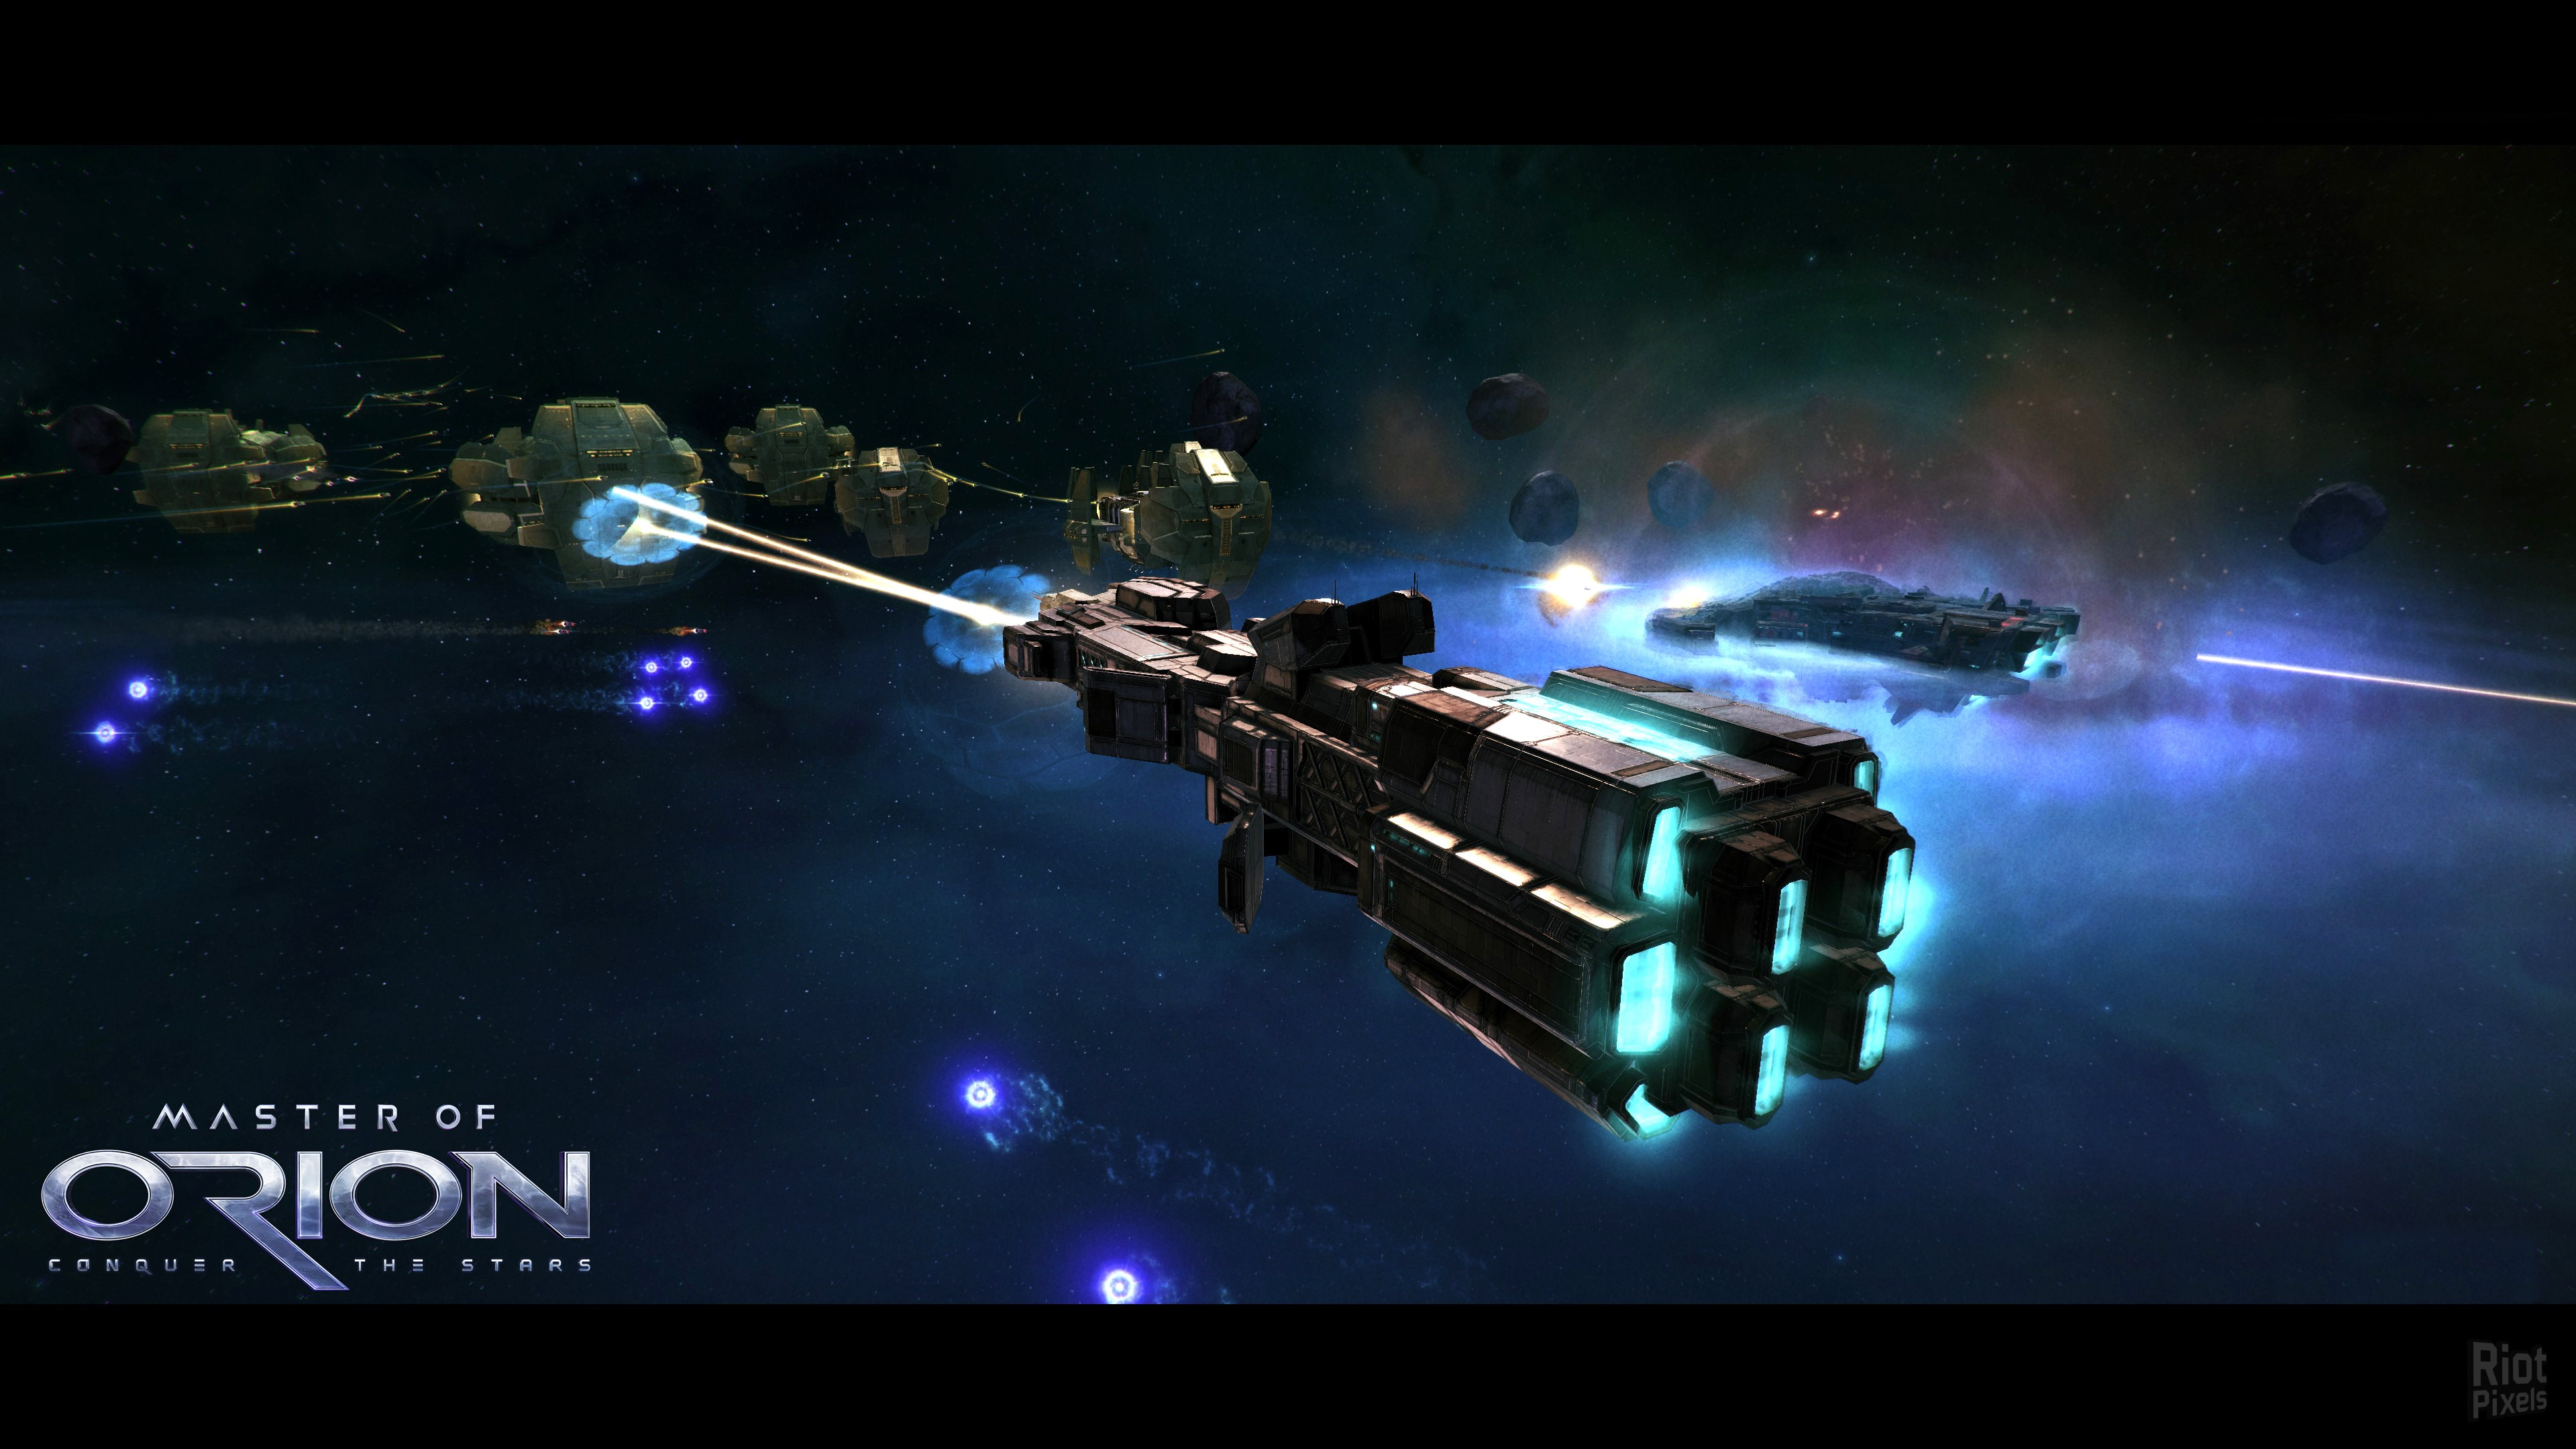 Us Military Wallpaper Quotes Wallpaper Master Of Orion Conquer The Stars Best Games